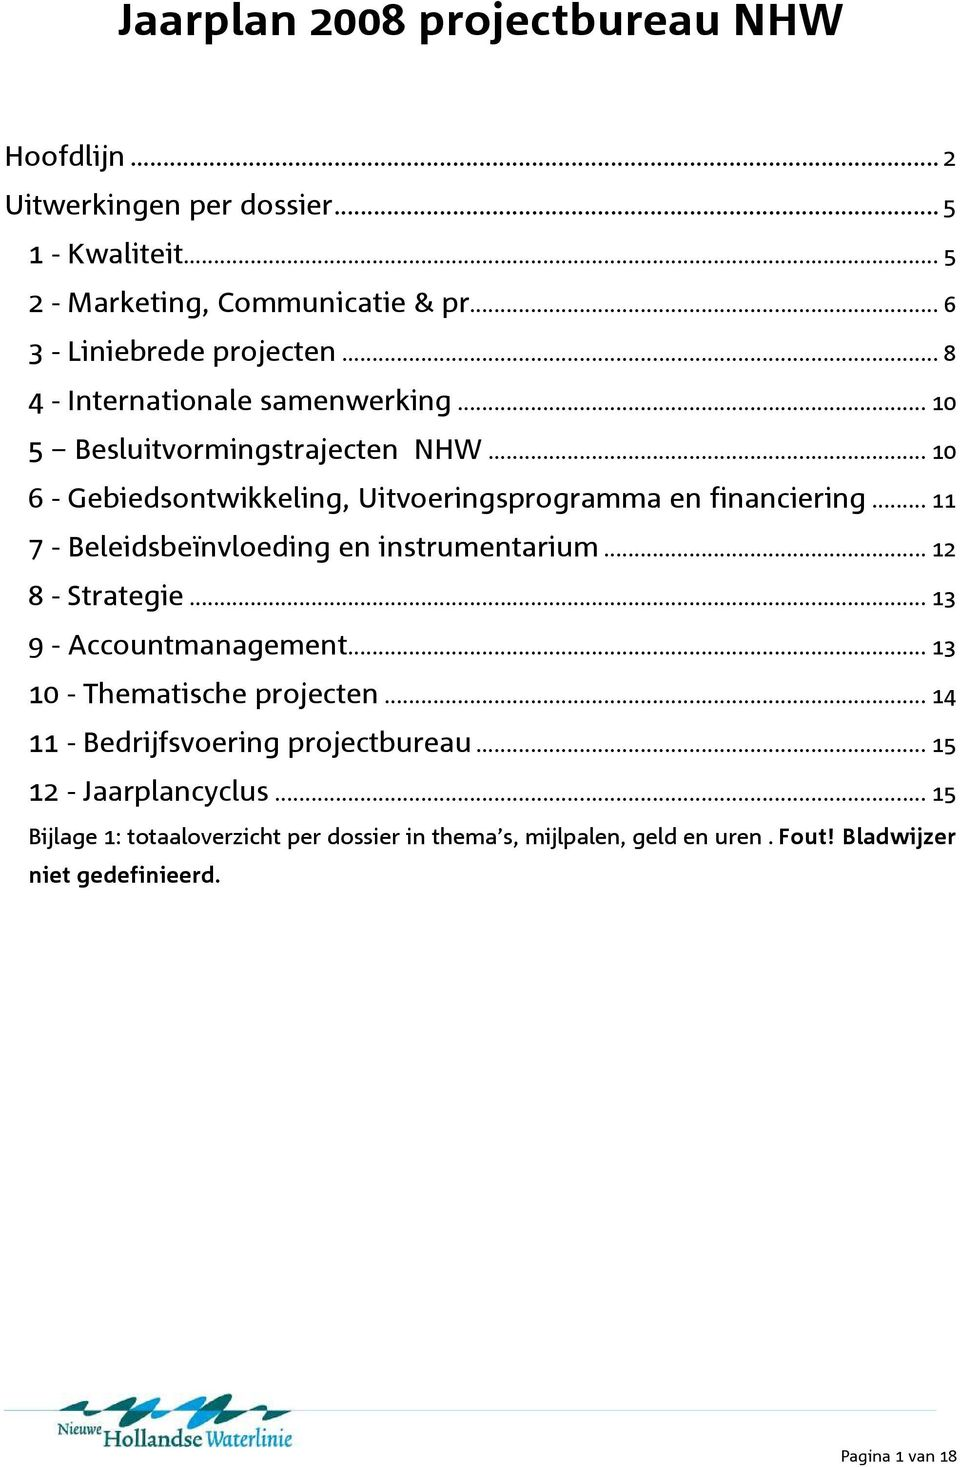 .. 11 7 - Beleidsbeïnvloeding en instrumentarium... 12 8 - Strategie... 13 9 - Accountmanagement... 13 10 - Thematische projecten.